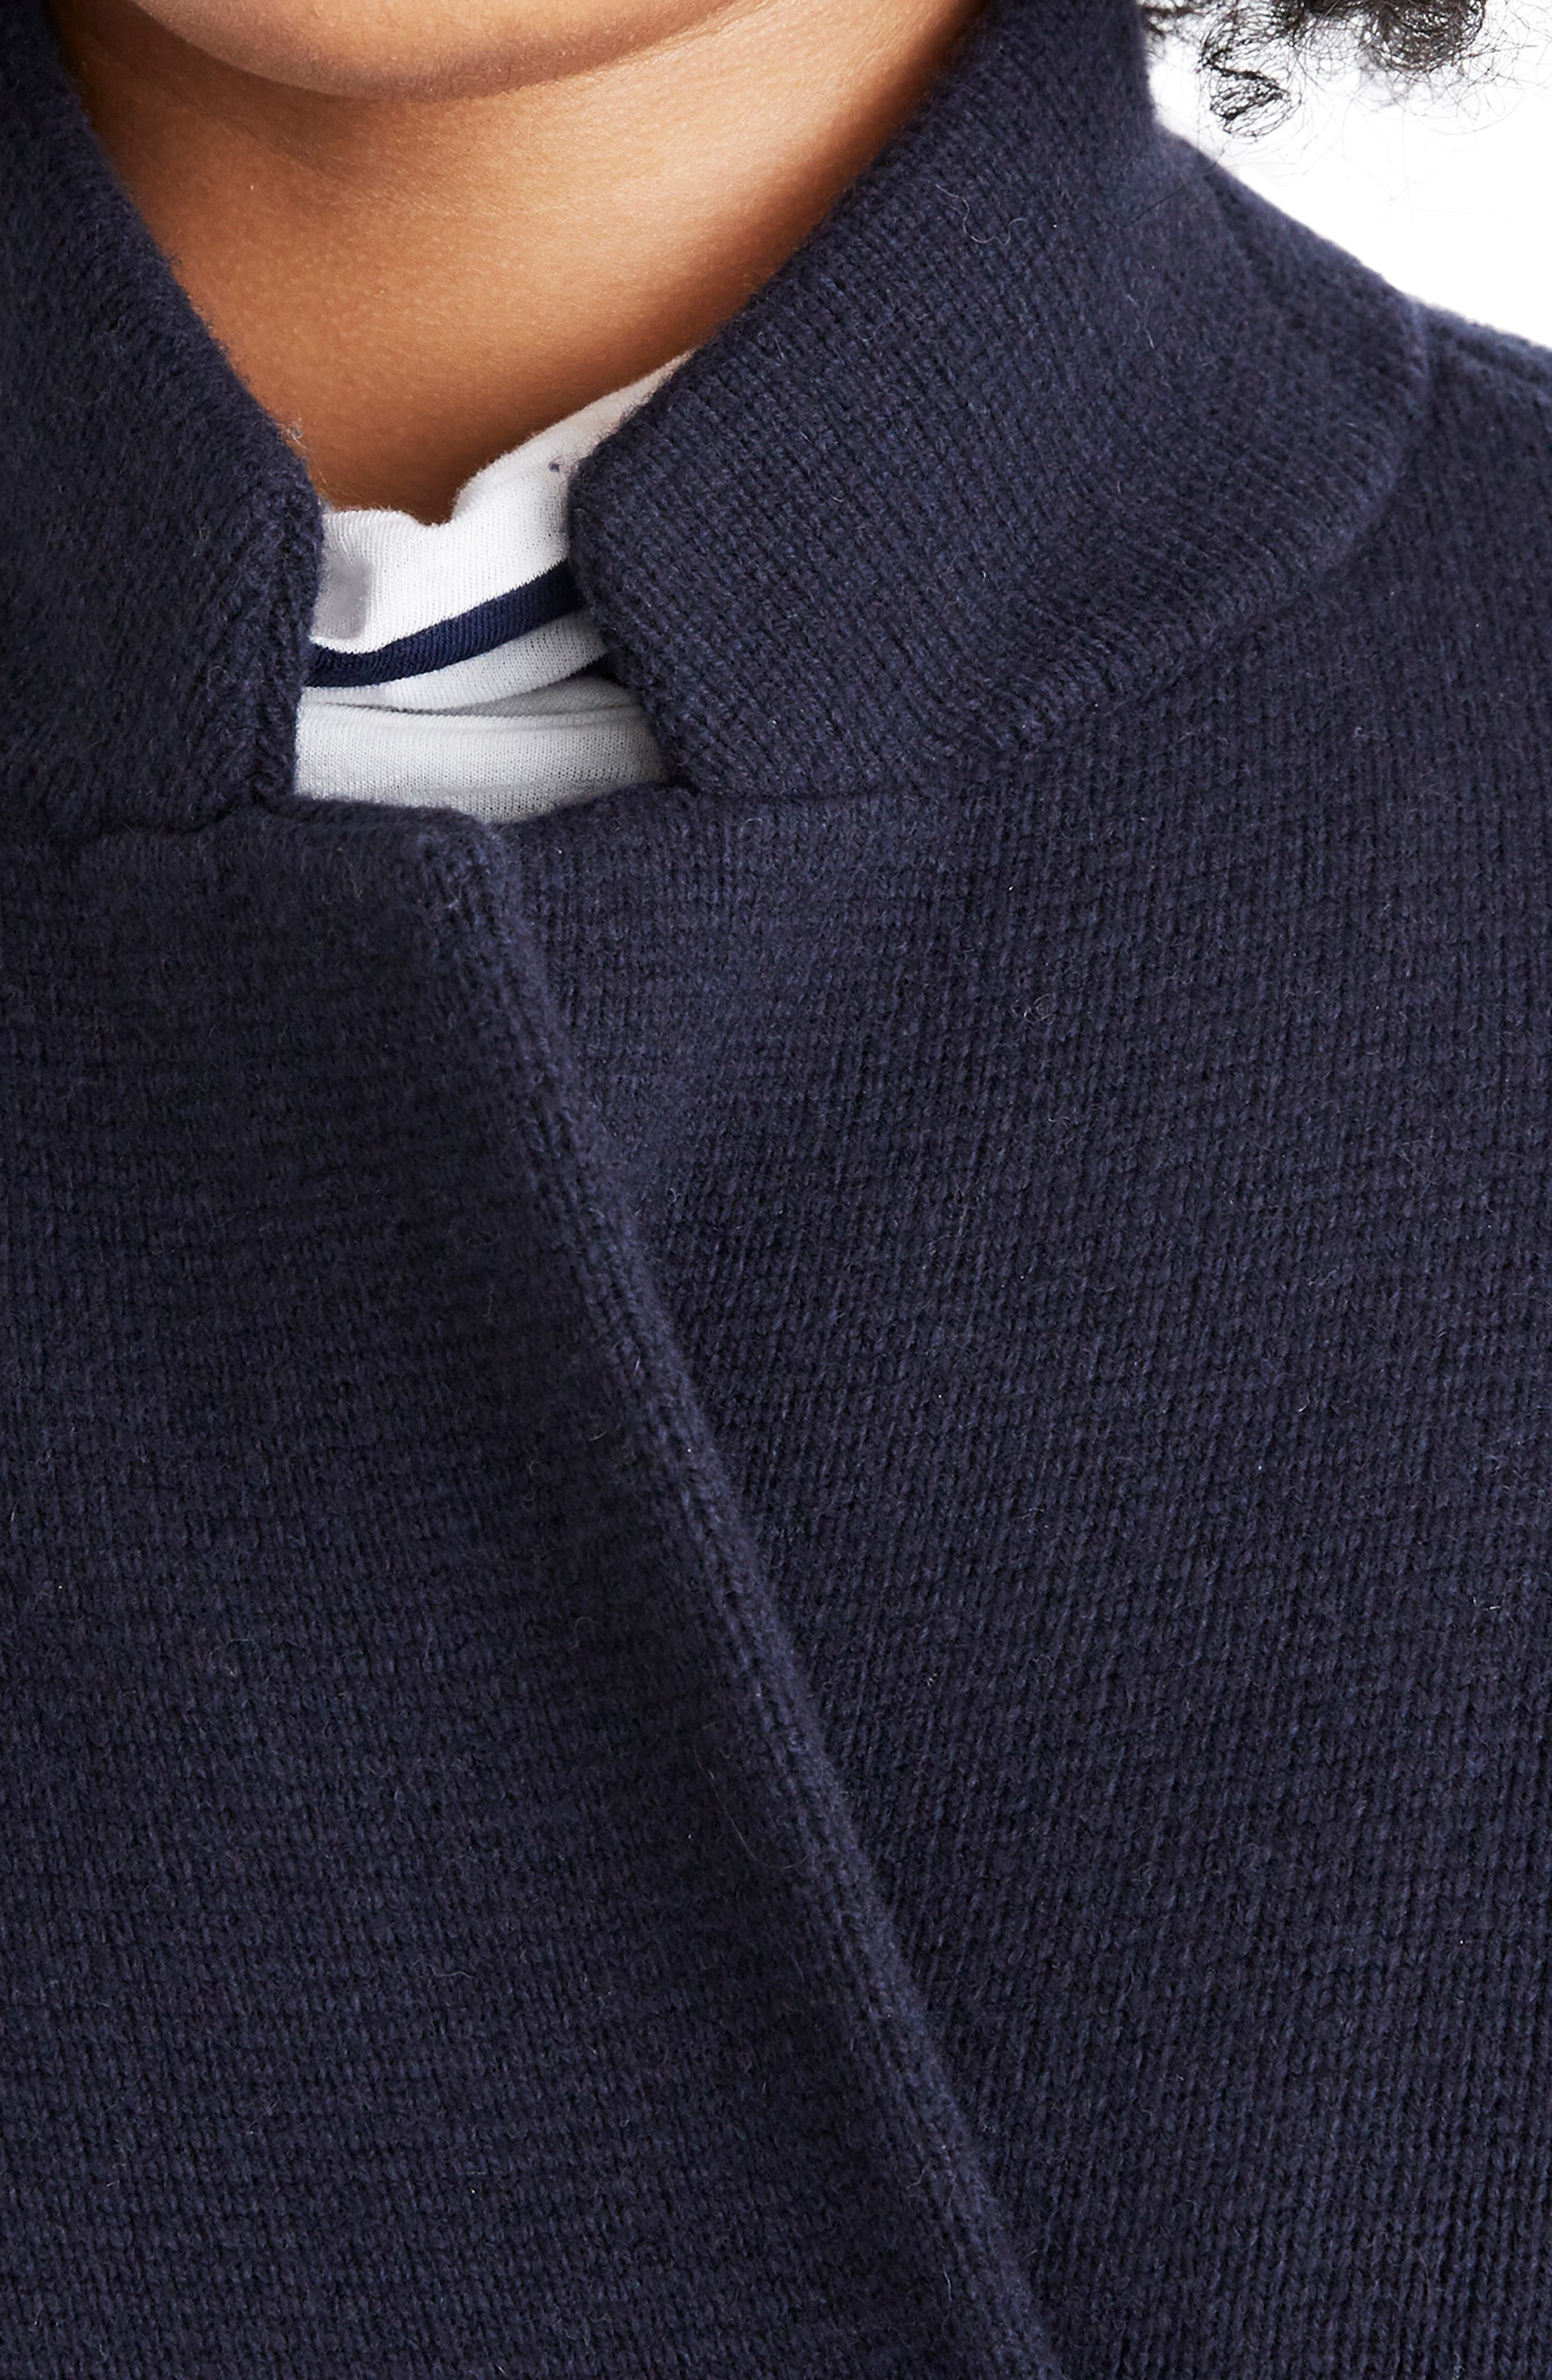 Double Breasted Sweater Coat,                             Alternate thumbnail 7, color,                             NAUTICAL BLACK